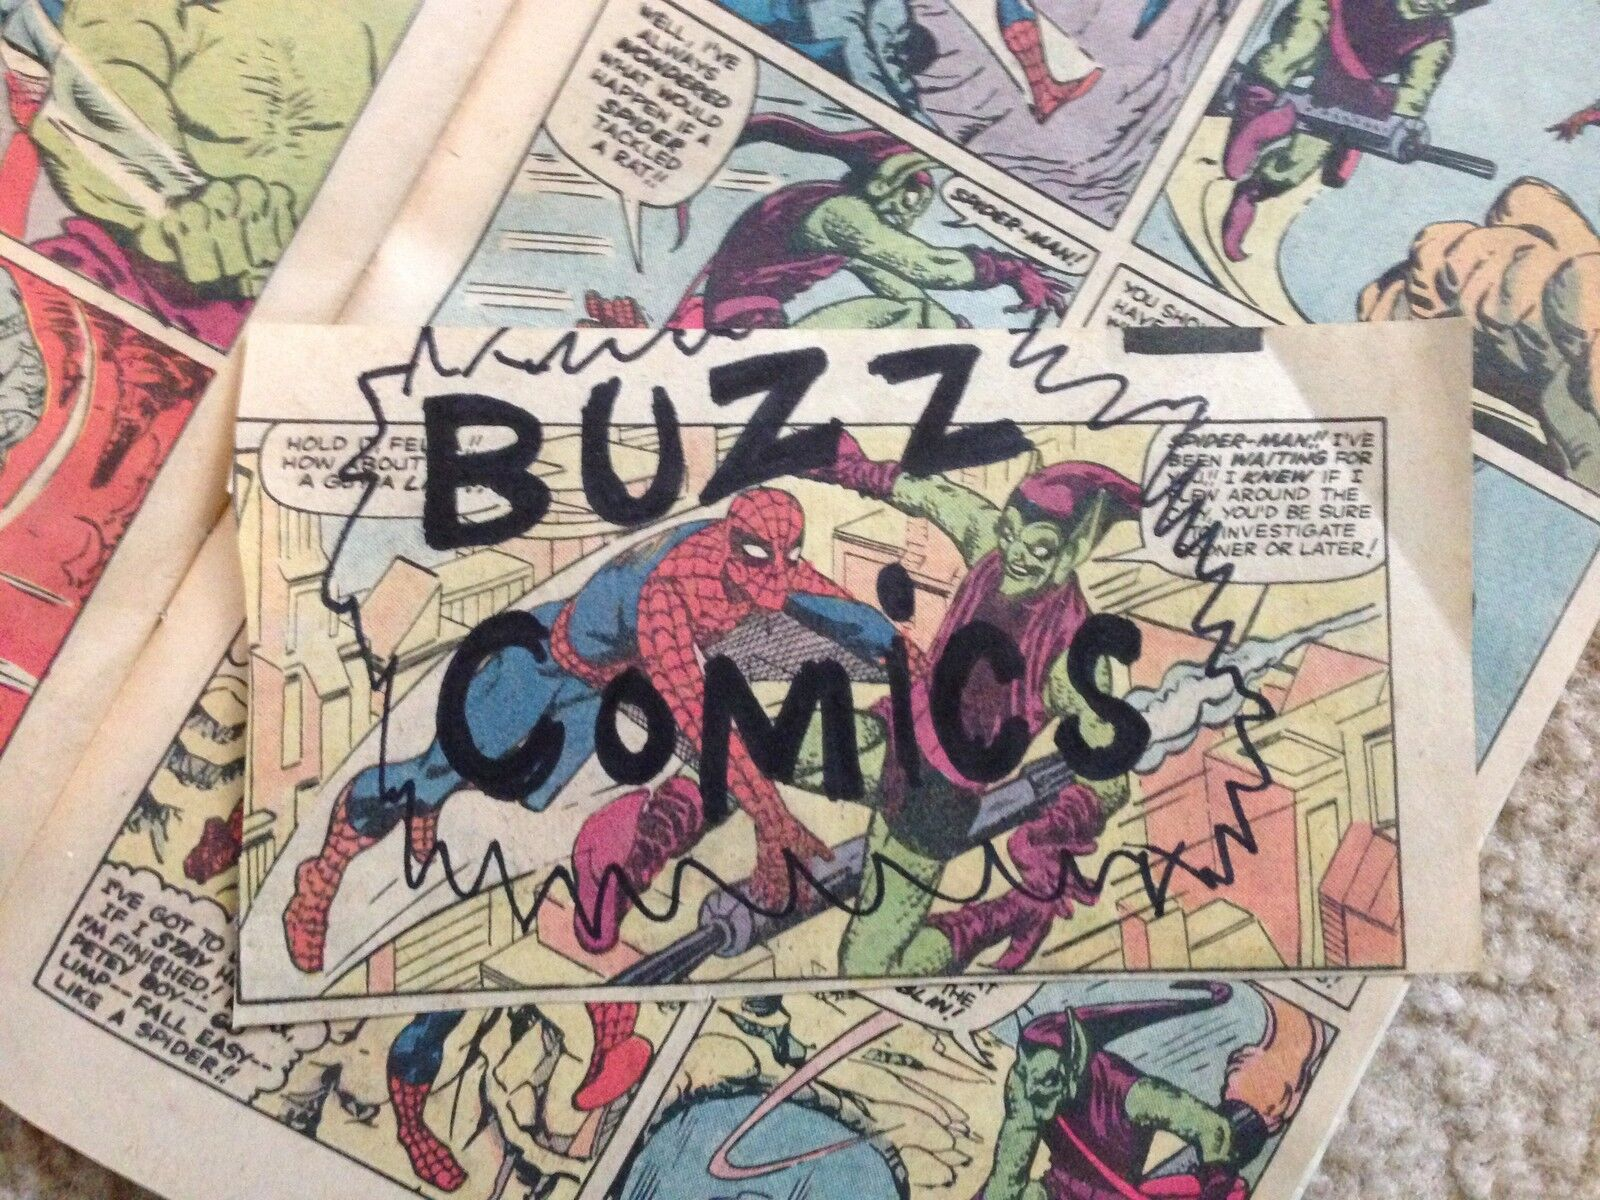 BuzzComics and Collectibles